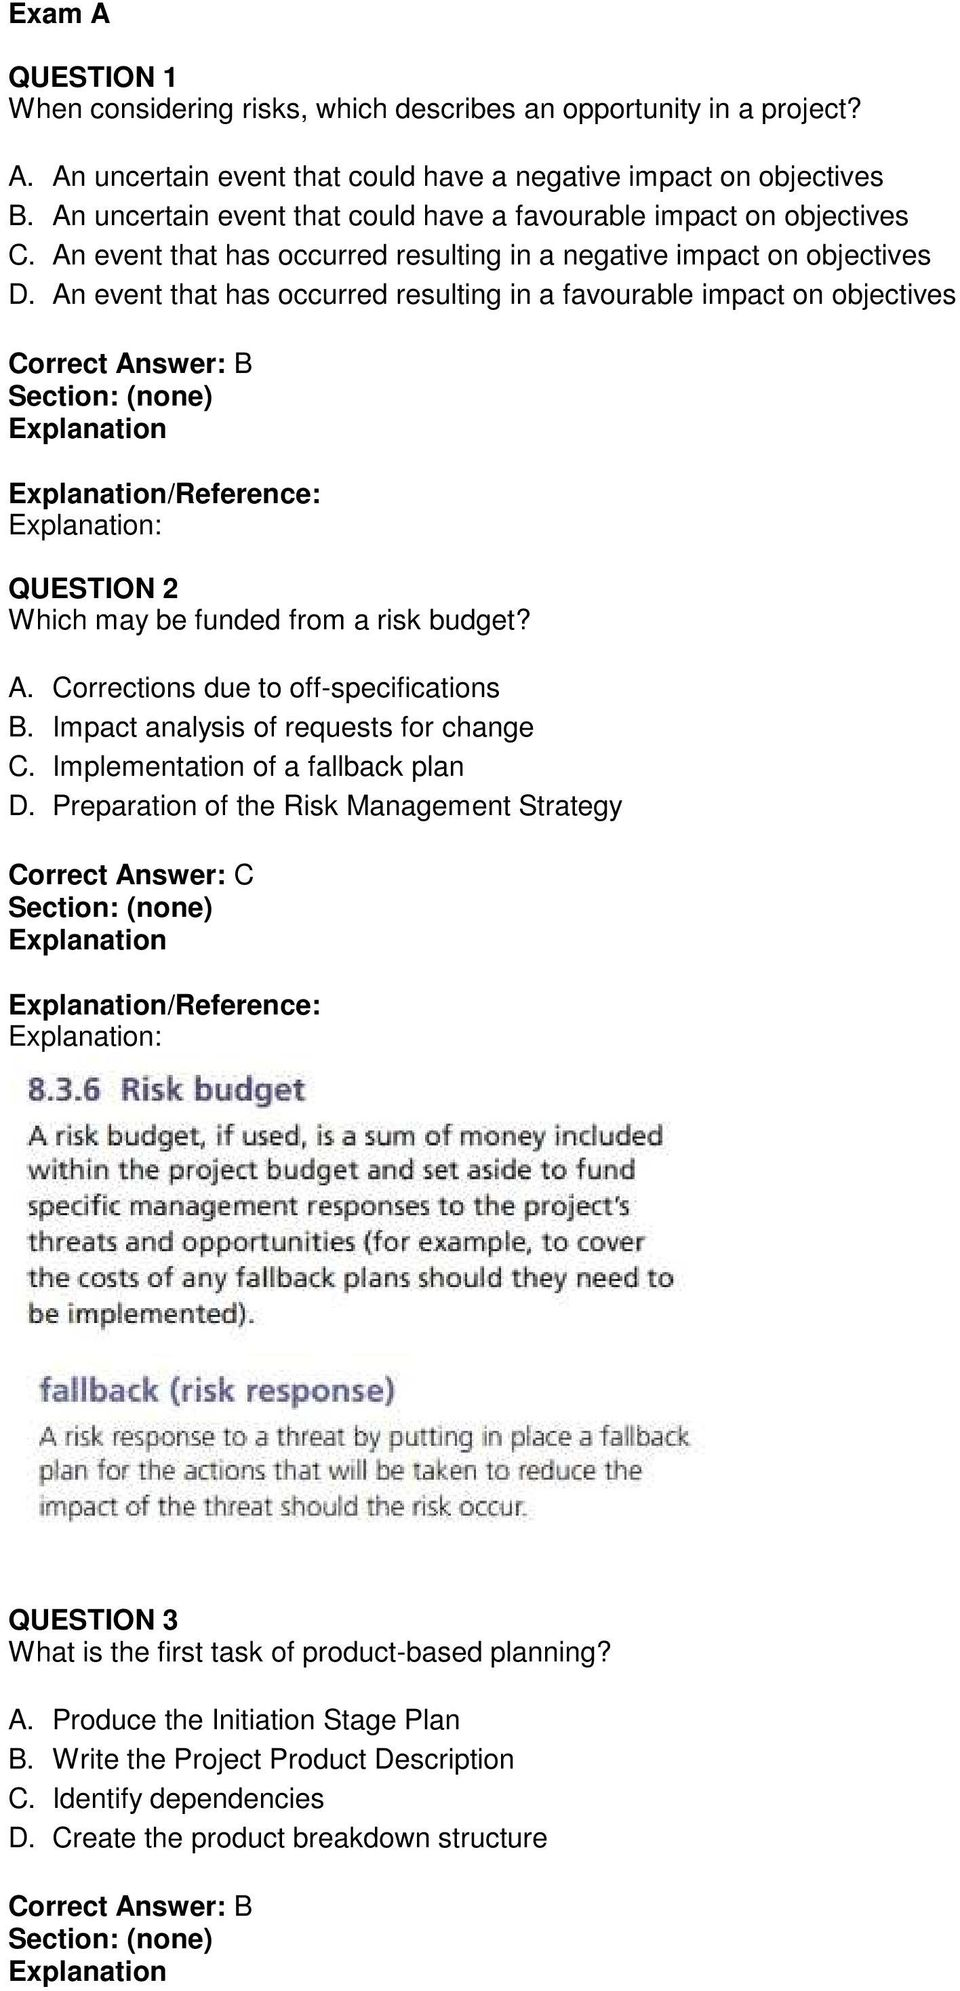 An event that has occurred resulting in a favourable impact on objectives /Reference: : QUESTION 2 Which may be funded from a risk budget? A. Corrections due to off-specifications B.